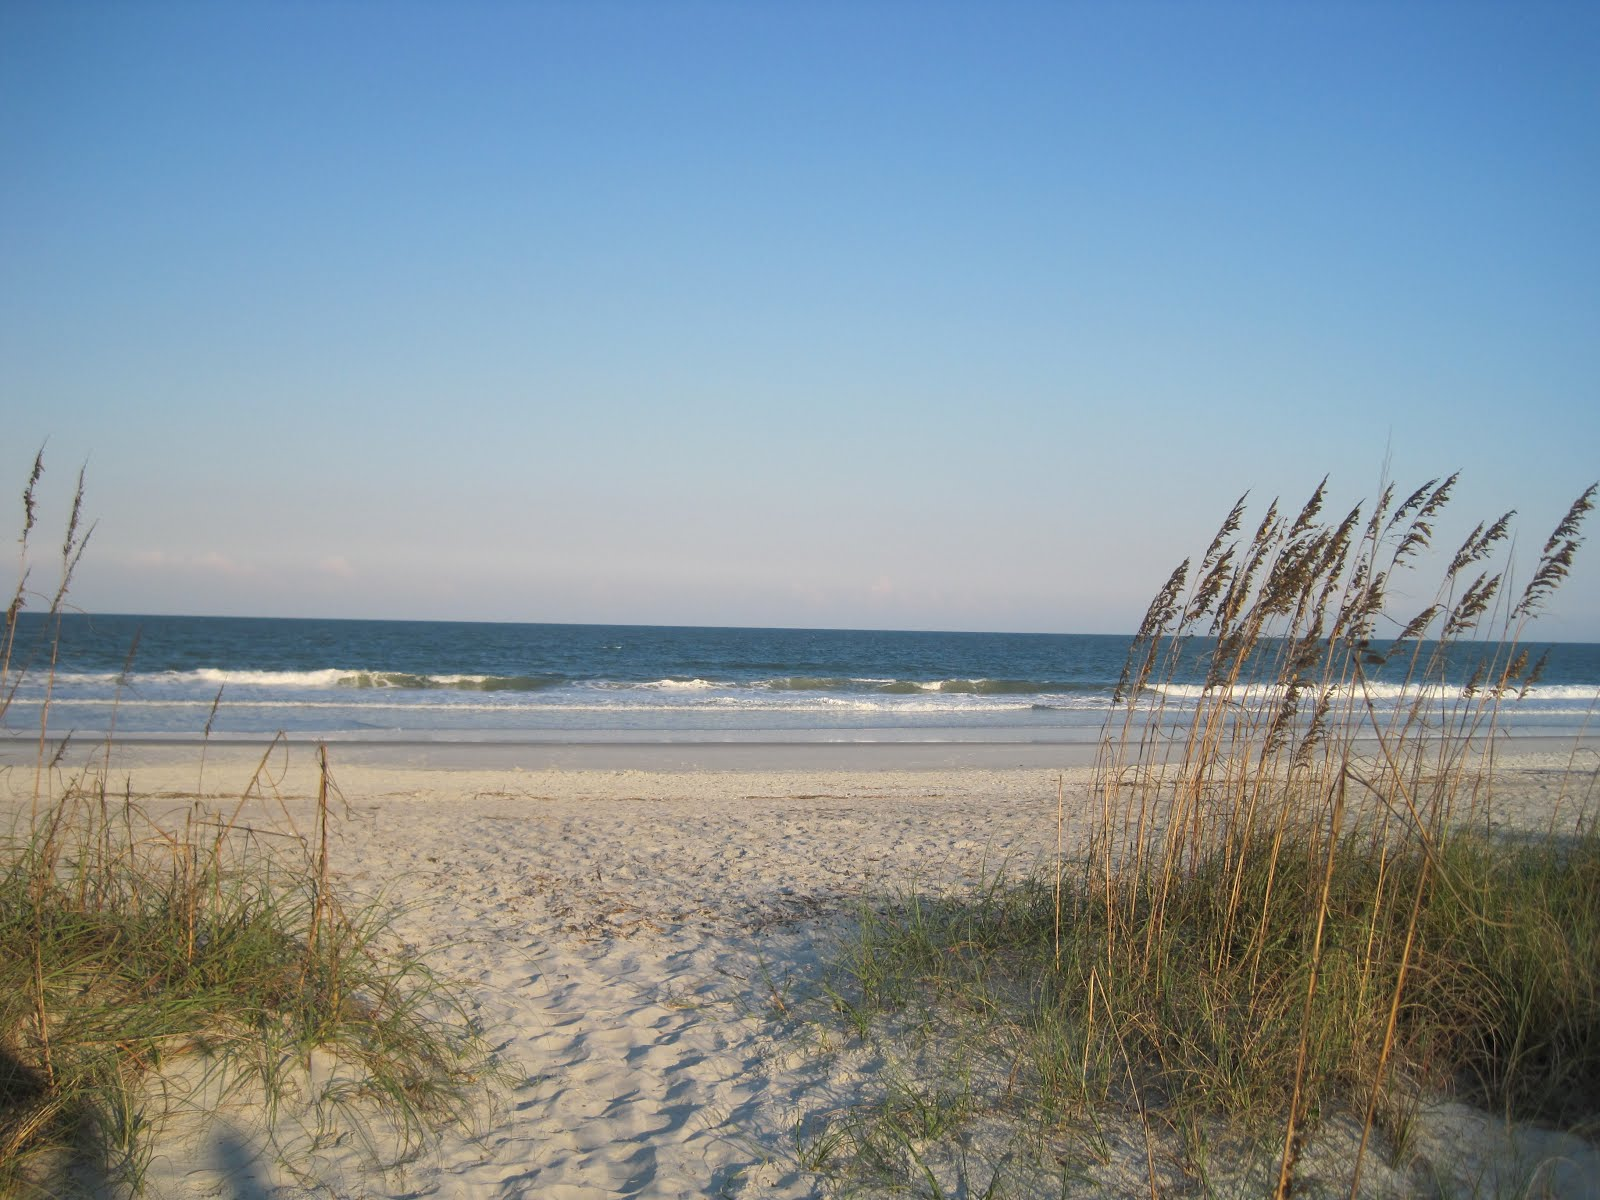 Main Beach on Amelia Island, Florida